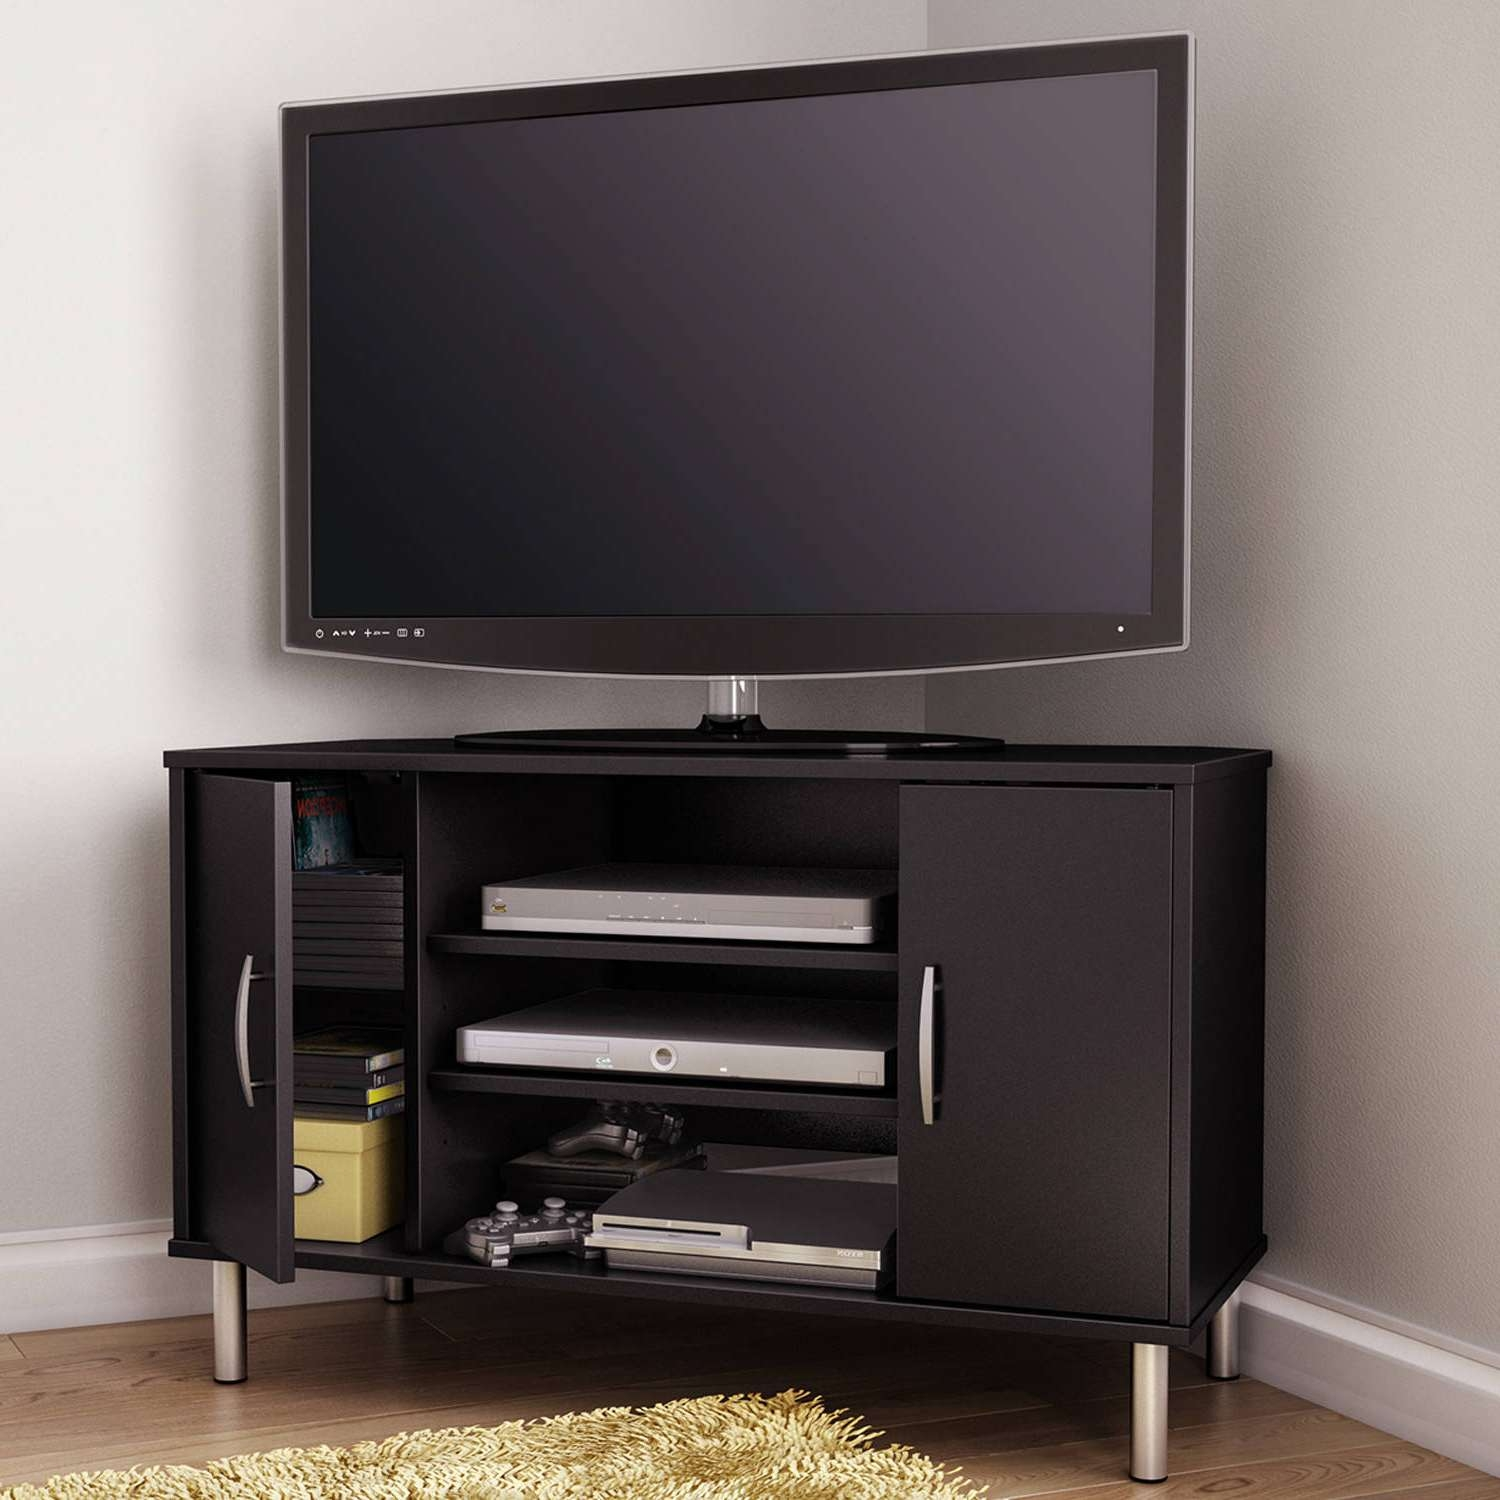 Black Small Tv Stands Tags : 40 Stunning Small Black Tv Stand For Small Black Tv Cabinets (View 2 of 20)